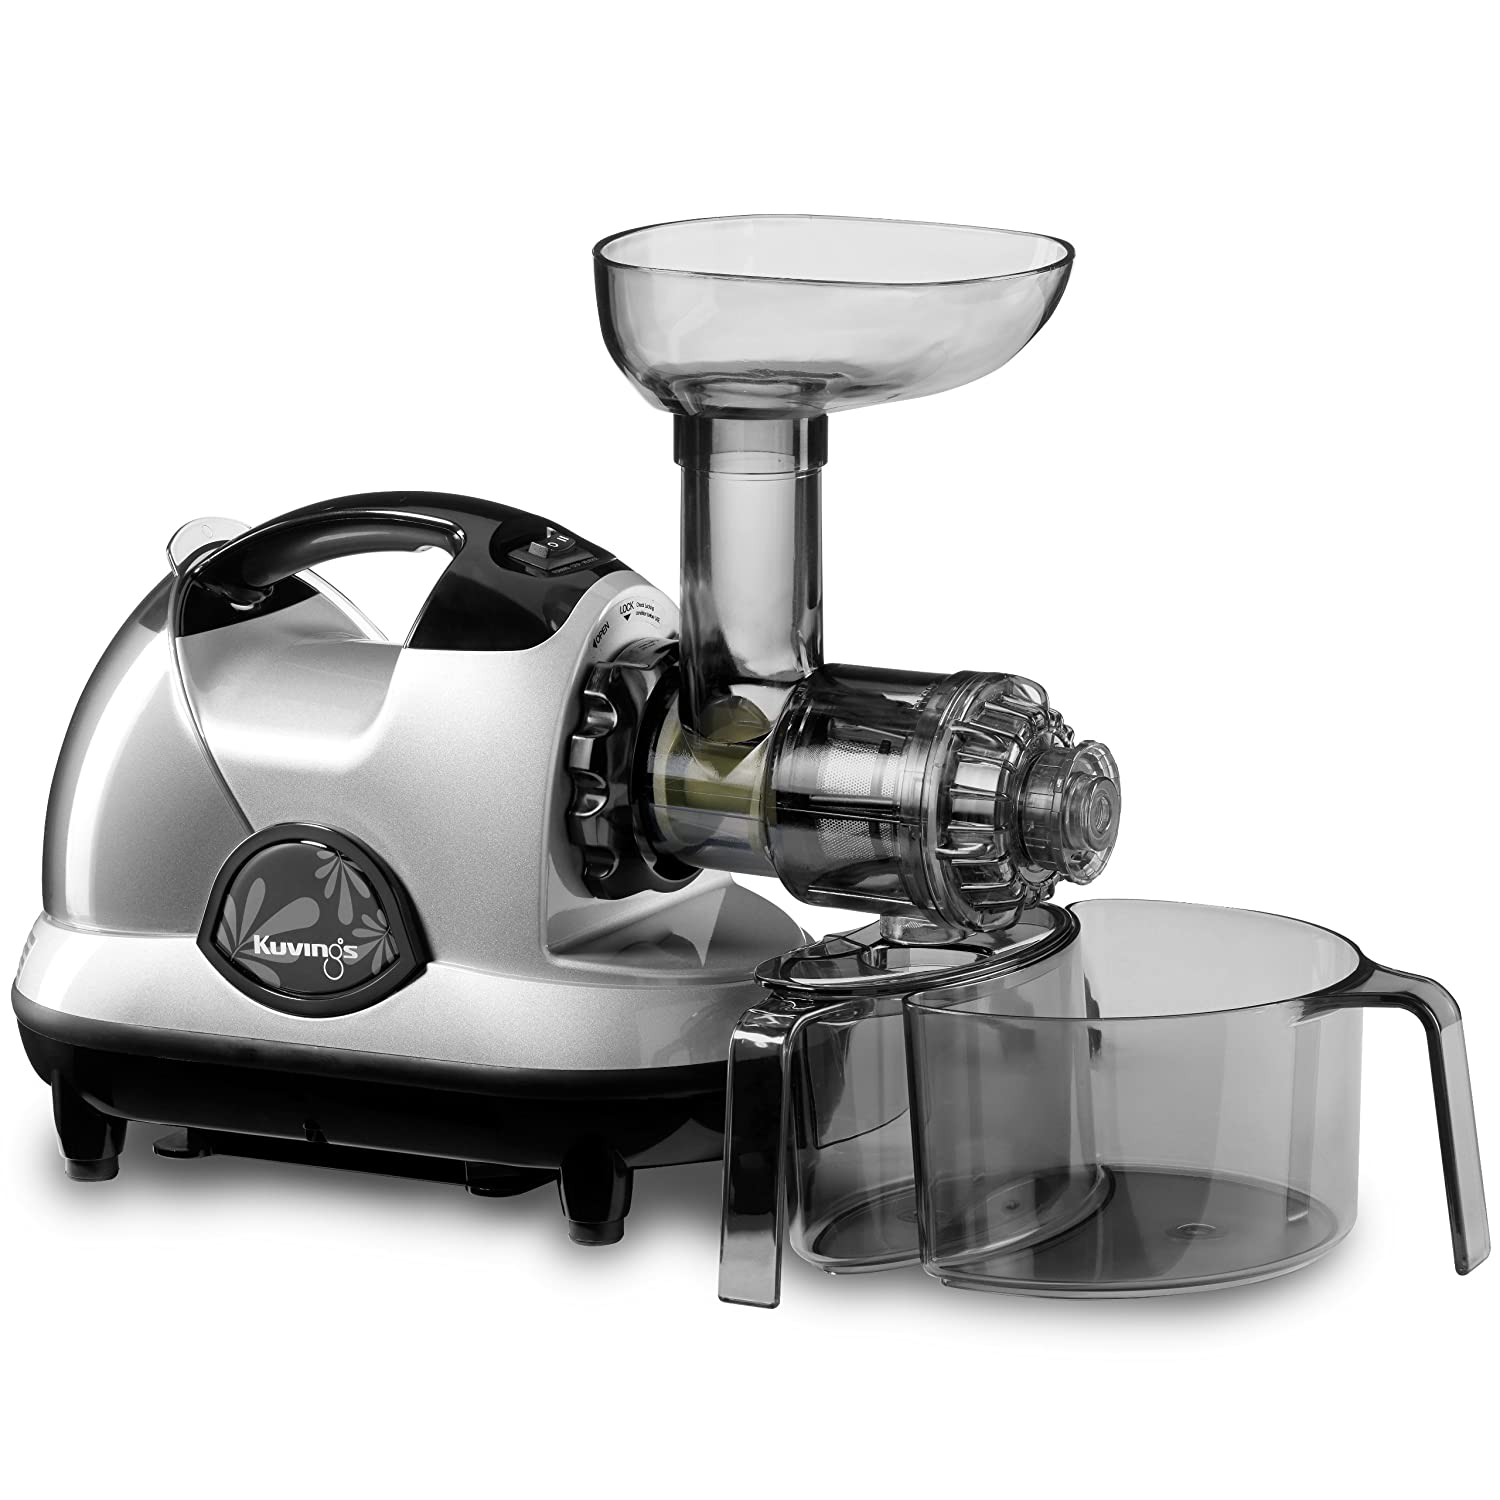 Kuvings NJE-3580U Masticating Slow Juicer